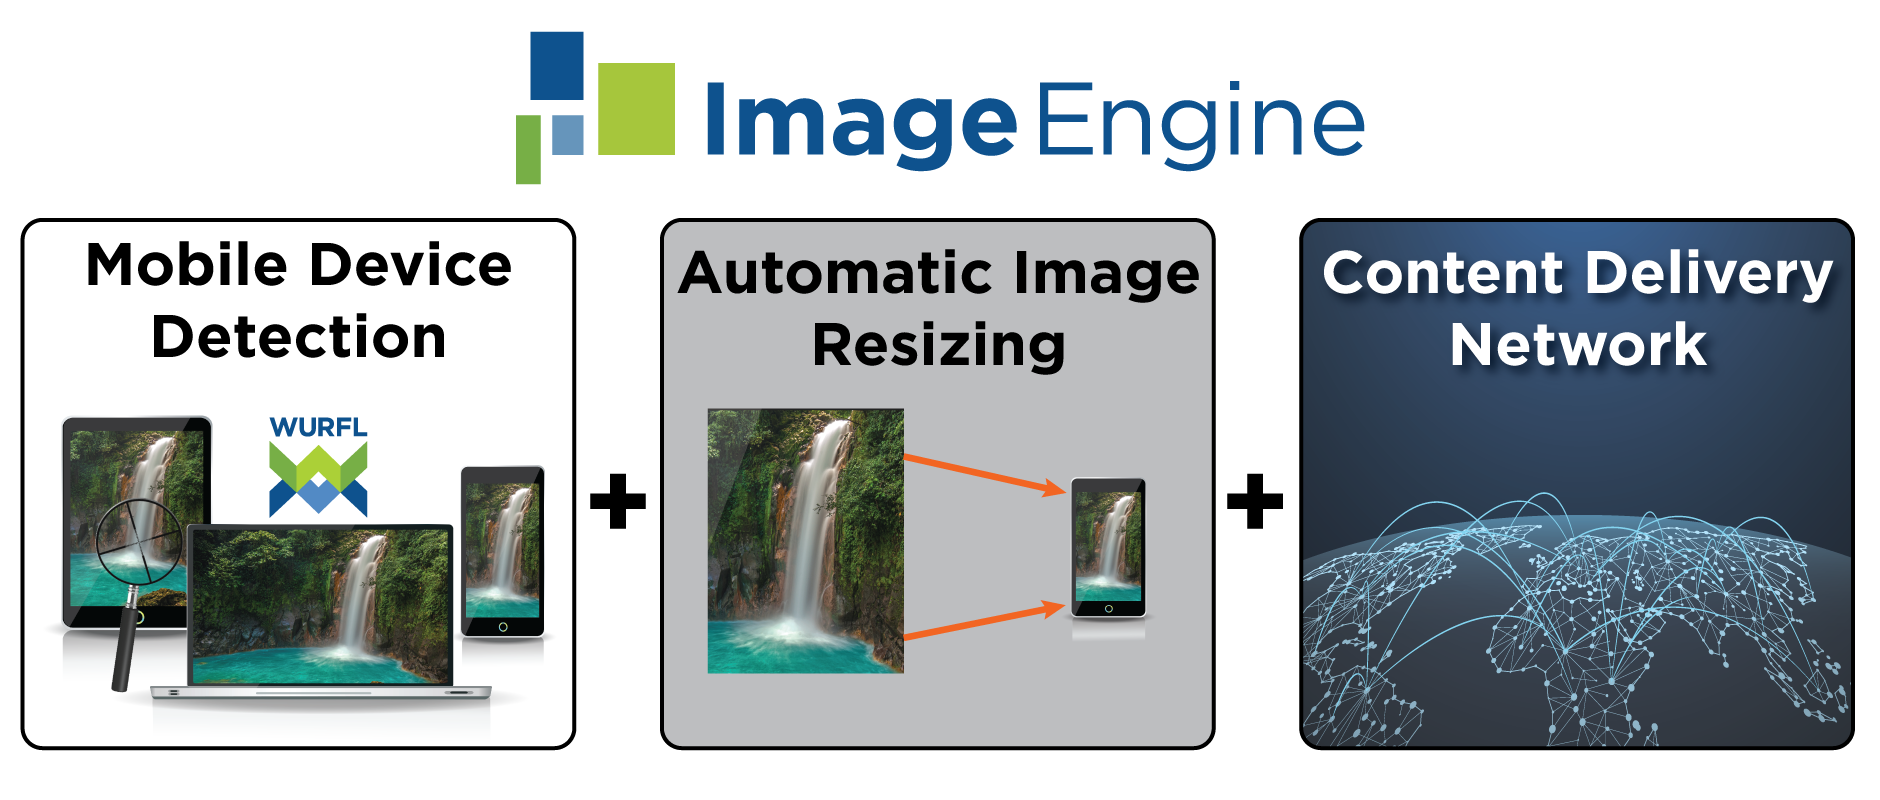 ImageEngine combines device detection + image resizing + CDN